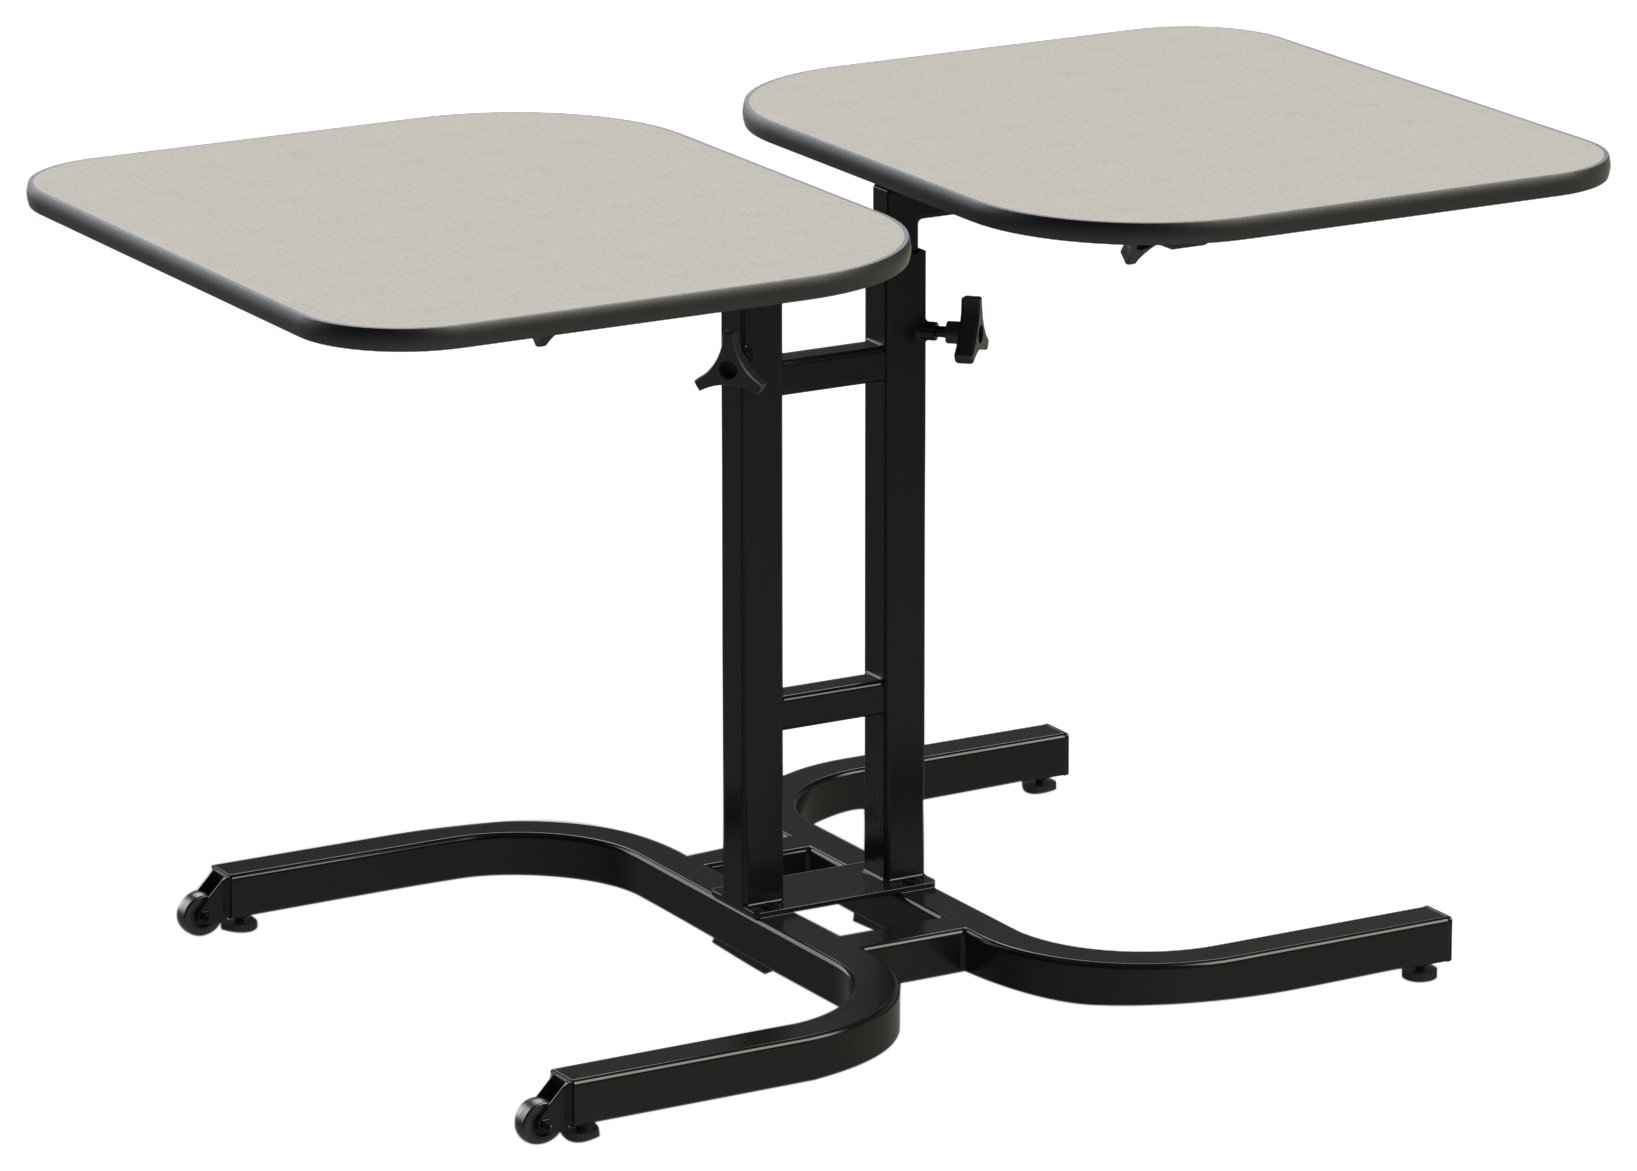 Wheel chair height adjustable table (2 person) single pedistal